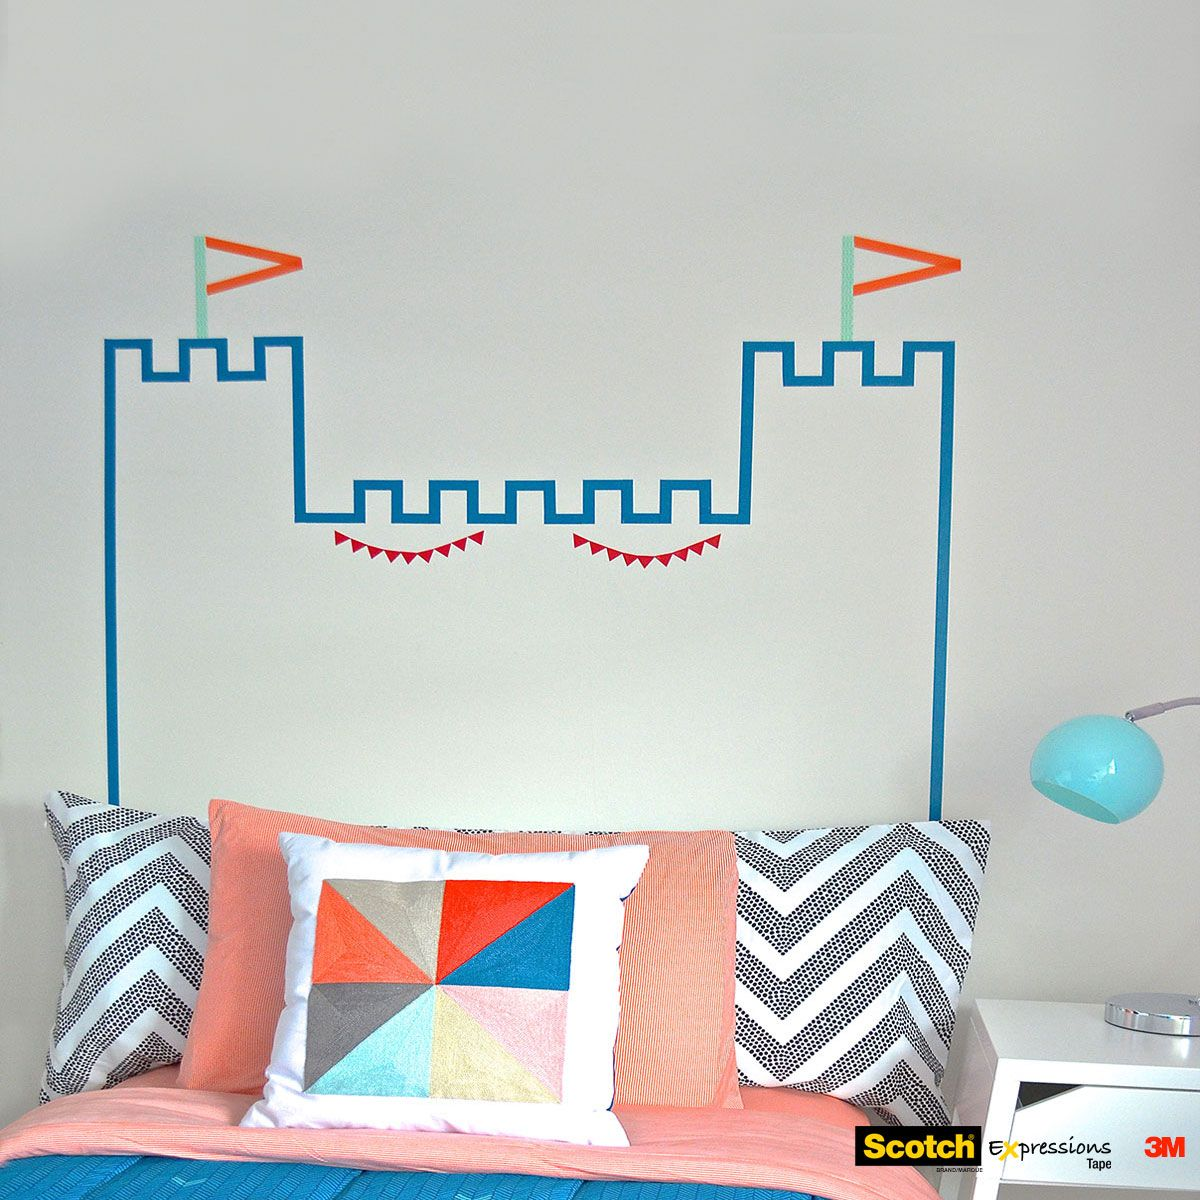 Magpie miller spring pastels decorating ideas magpie masking washi tape headboard castle diy amipublicfo Choice Image